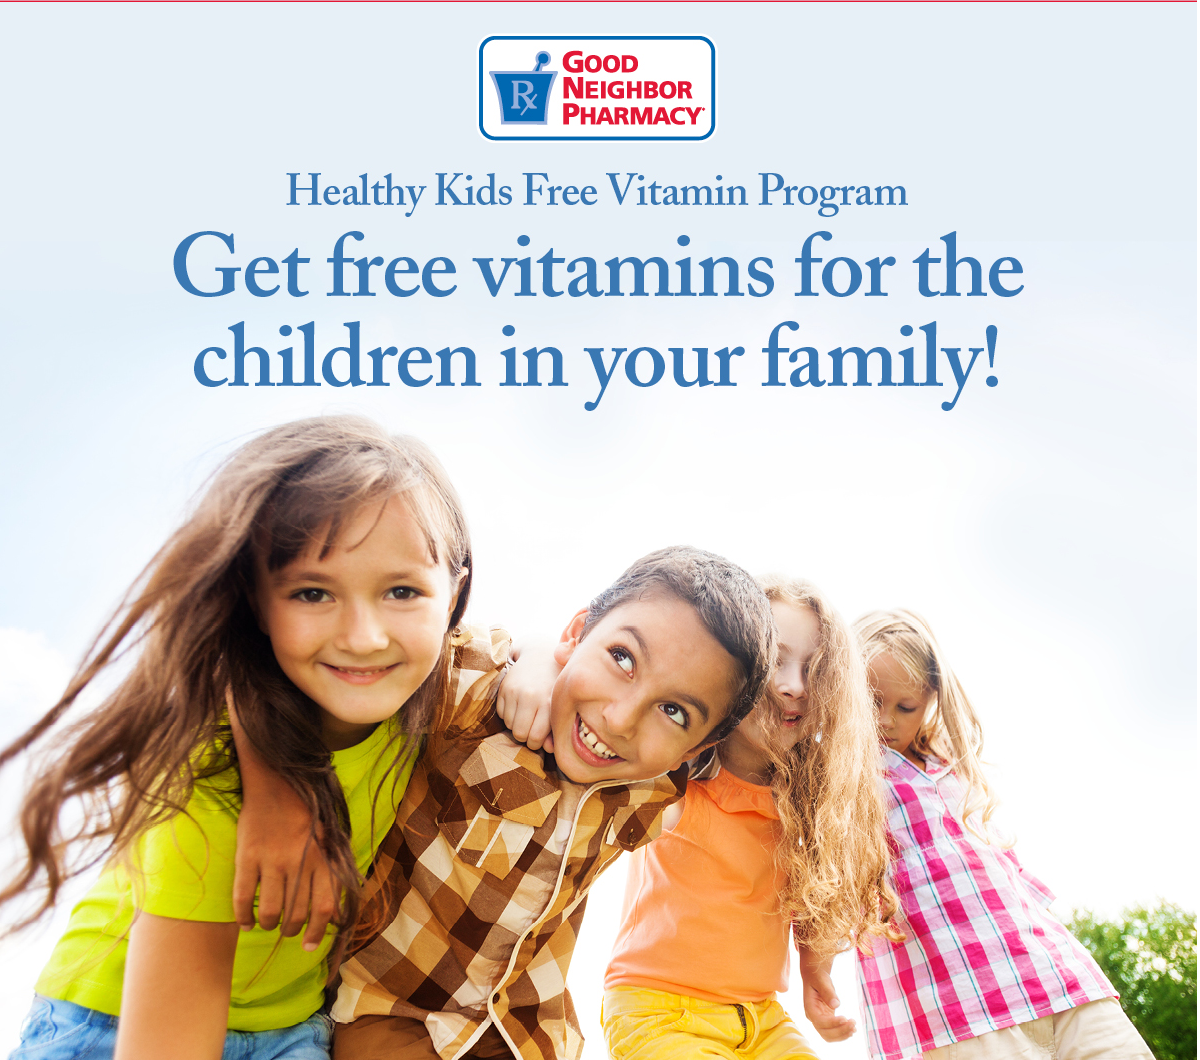 Healthy Kids Free Vitamin Program Get Free vitamins for the children in your family today Good Neighbor Pharmacy